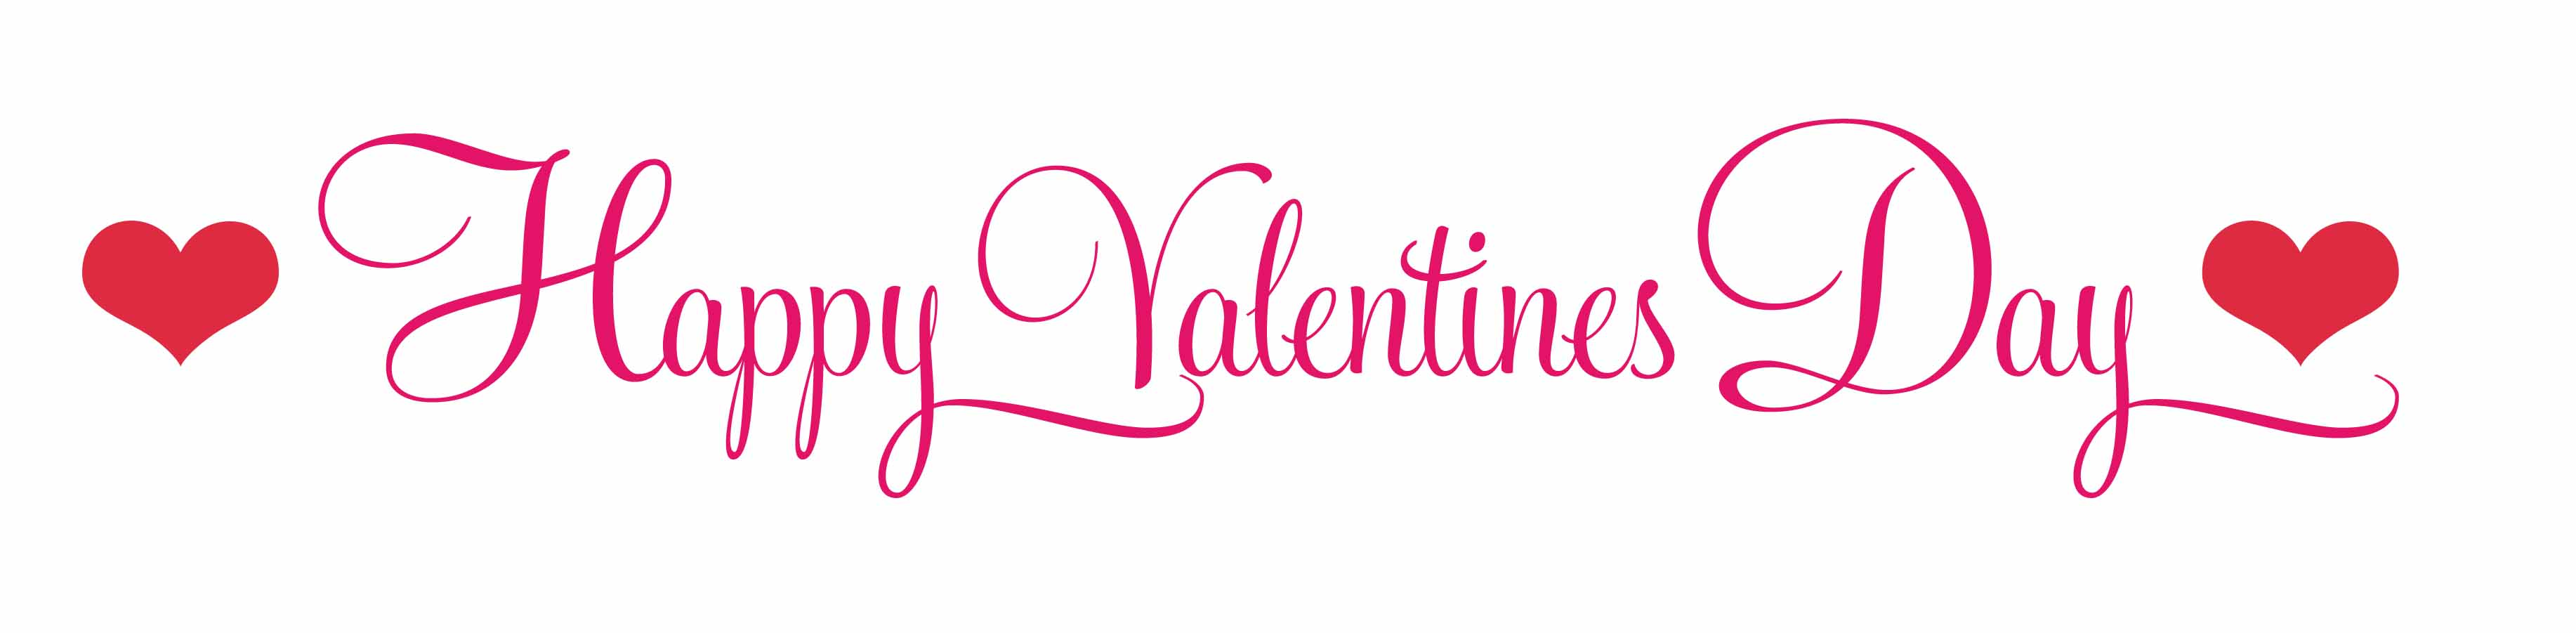 valentines day clipart banner - Clipground